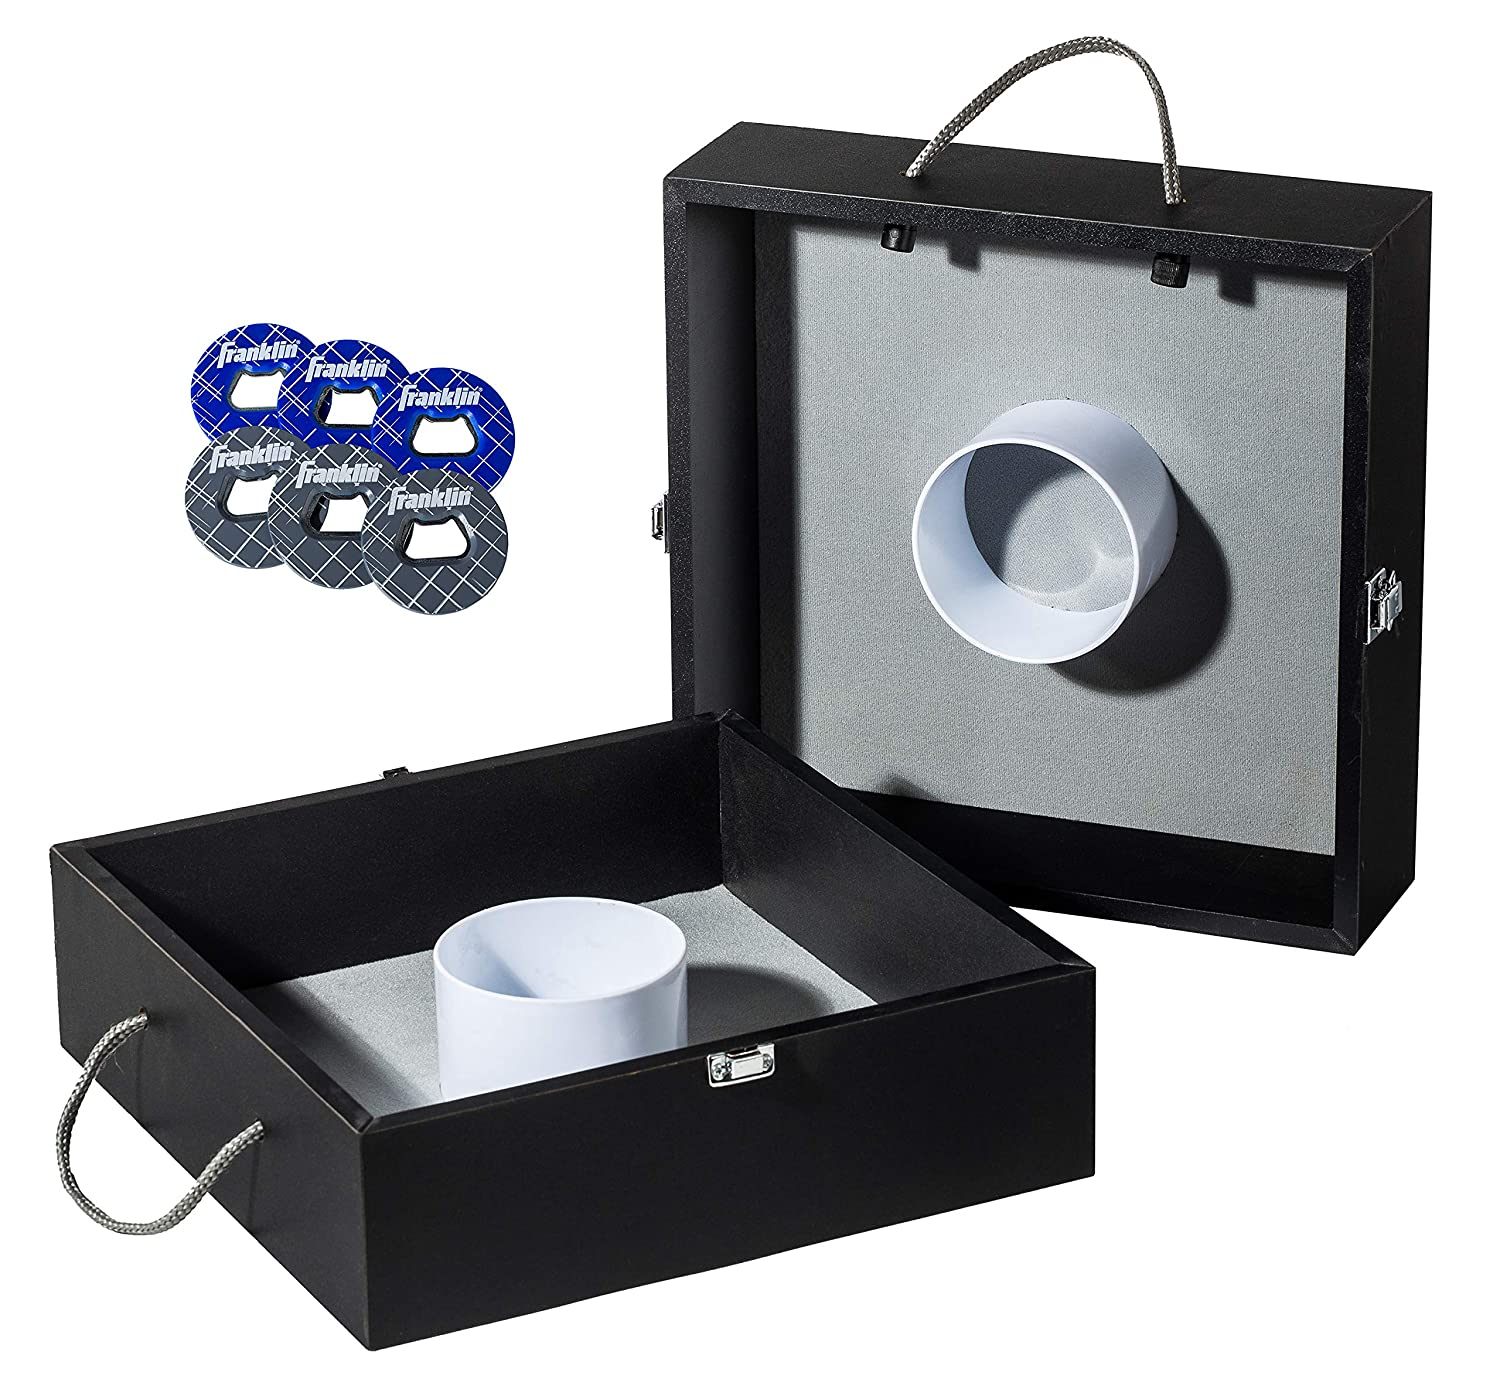 Franklin Sports Washer Toss - Includes 2 Washer Toss Targets and Steel Washers - Easy Carry Handles